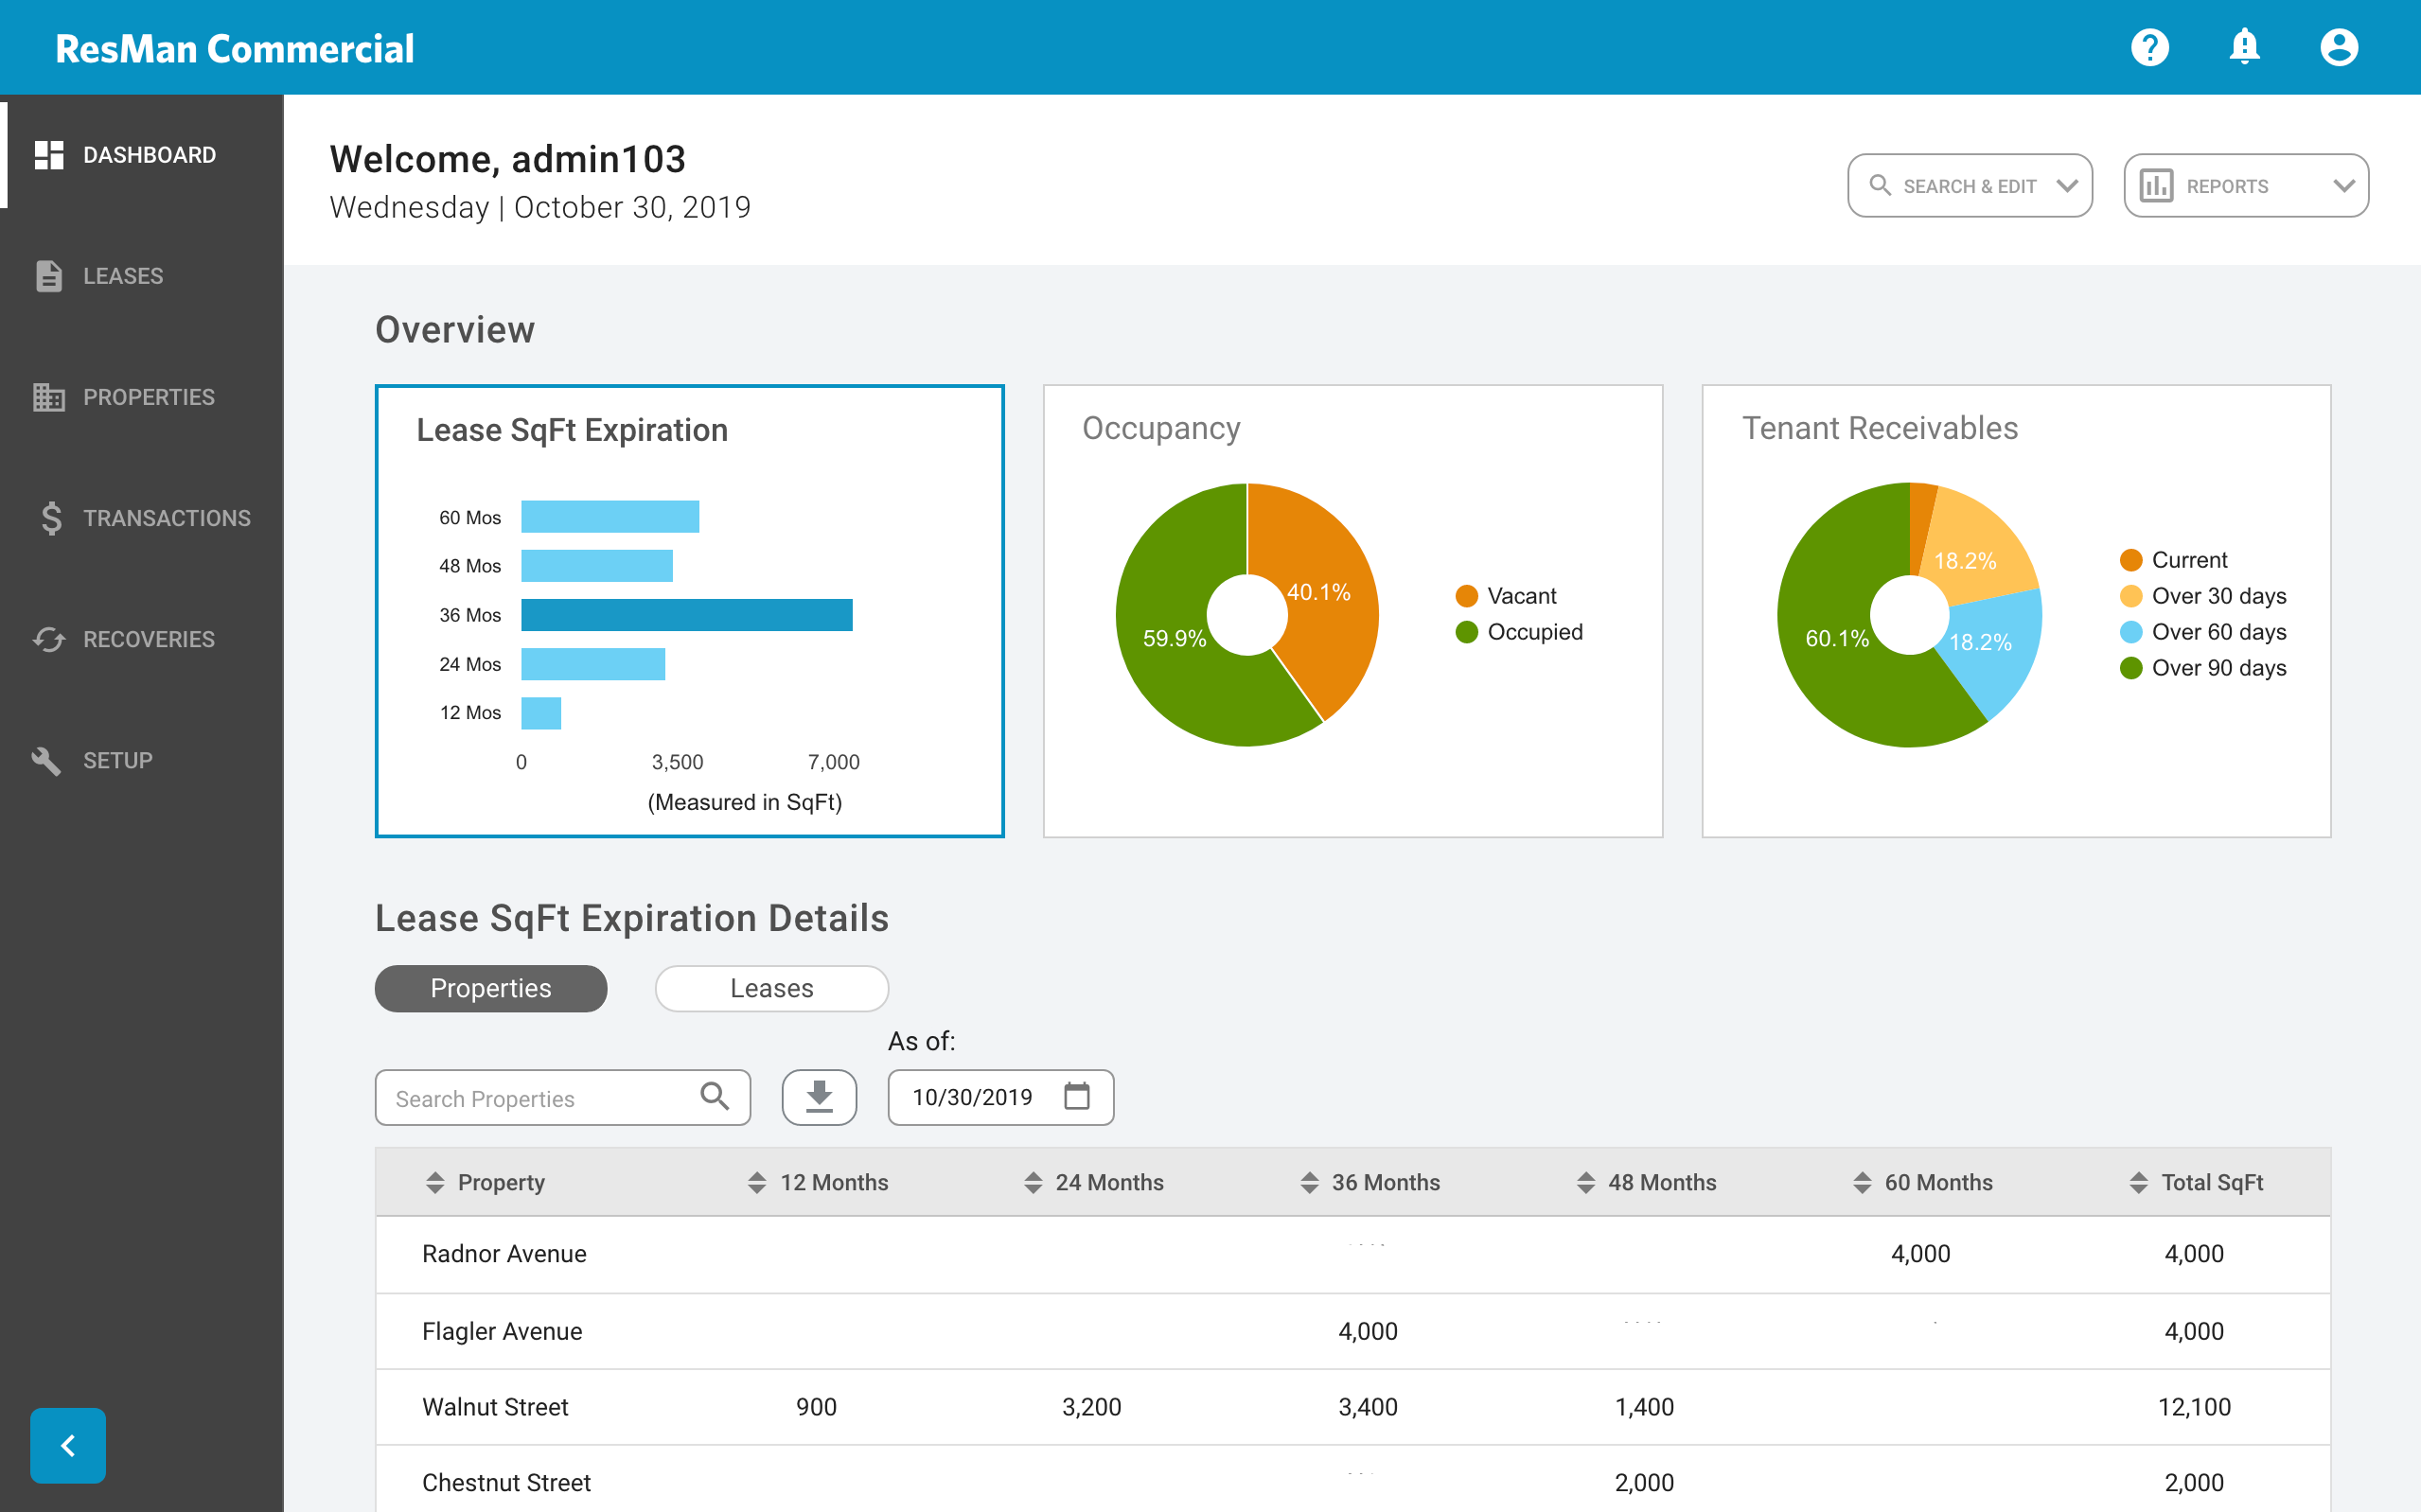 Commercial property management software dashboard